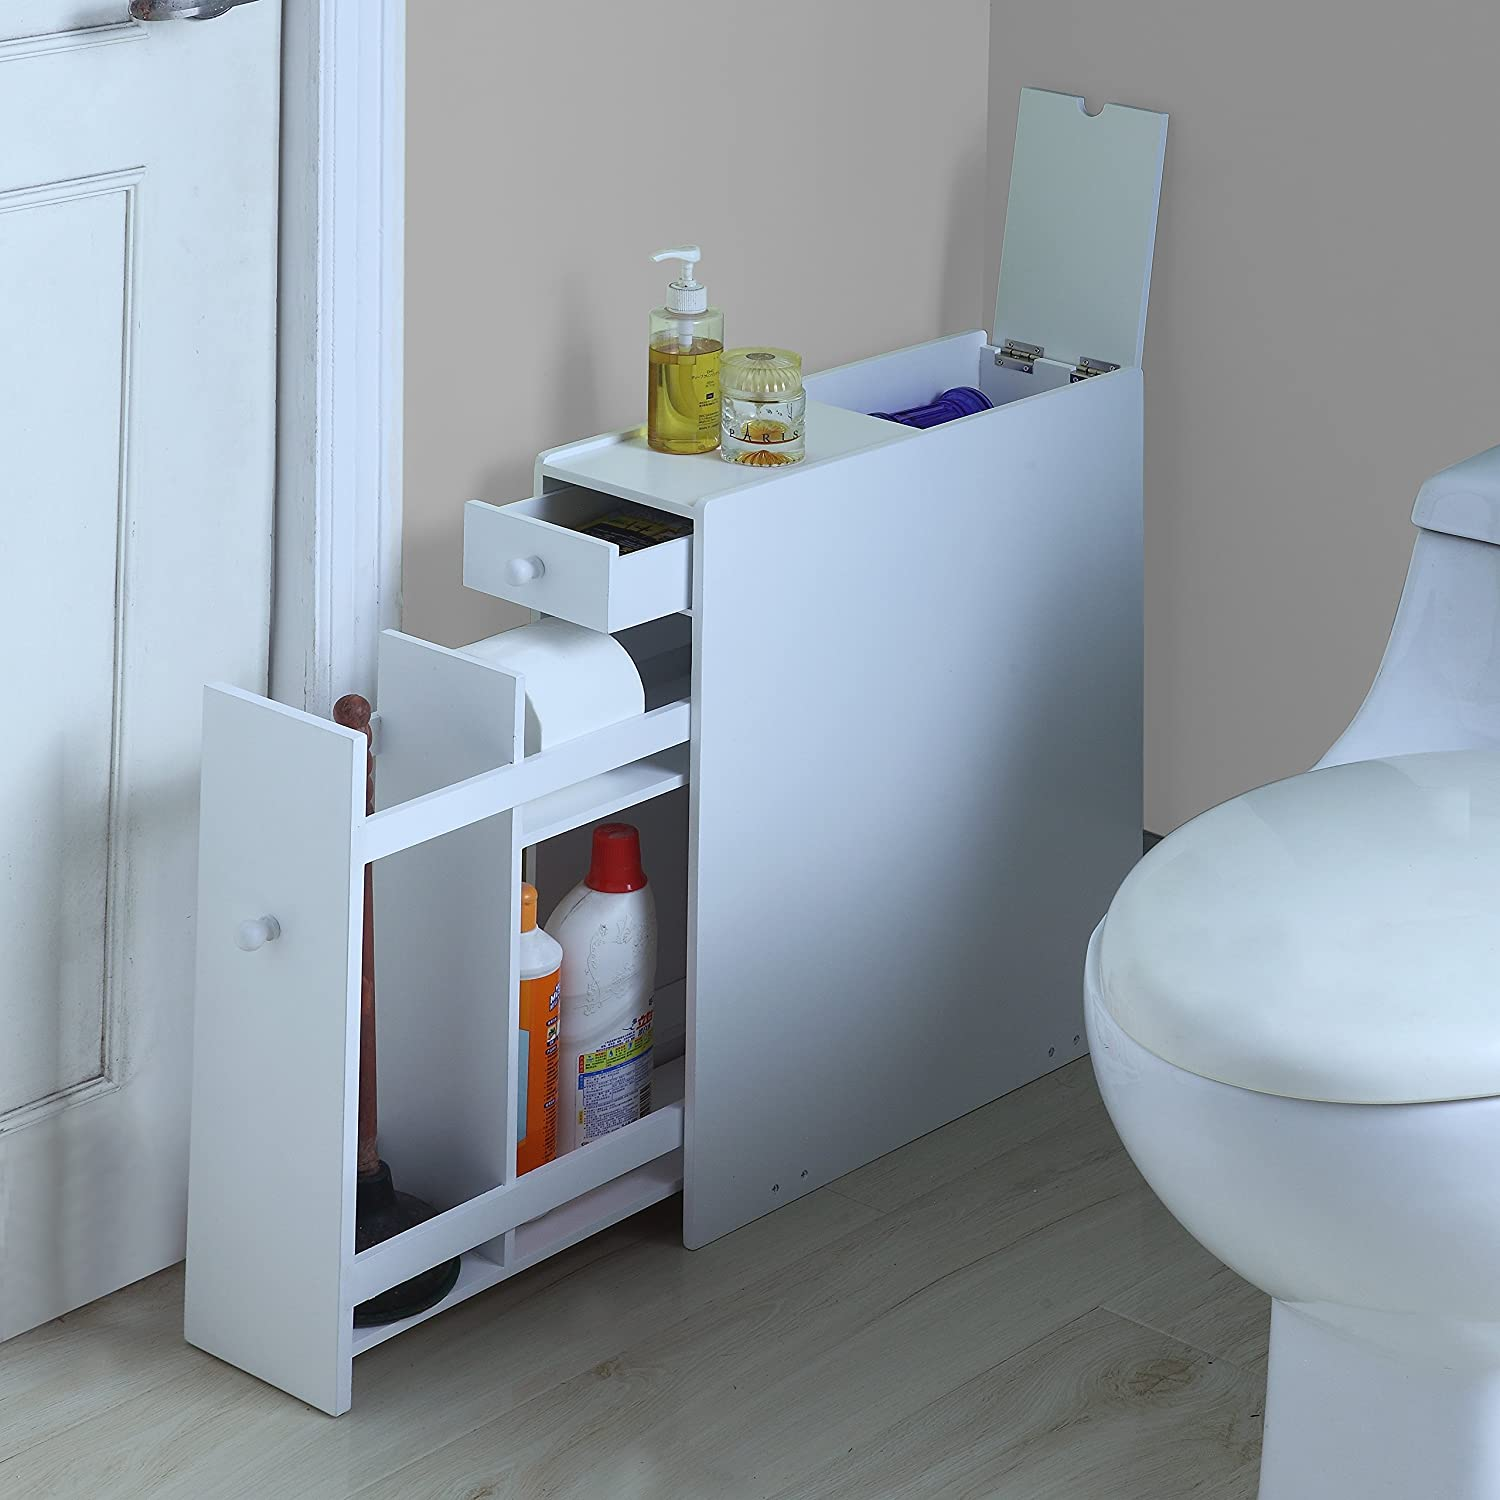 Proman Products Bathroom Floor Cabinet: Amazon.co.uk: Kitchen & Home